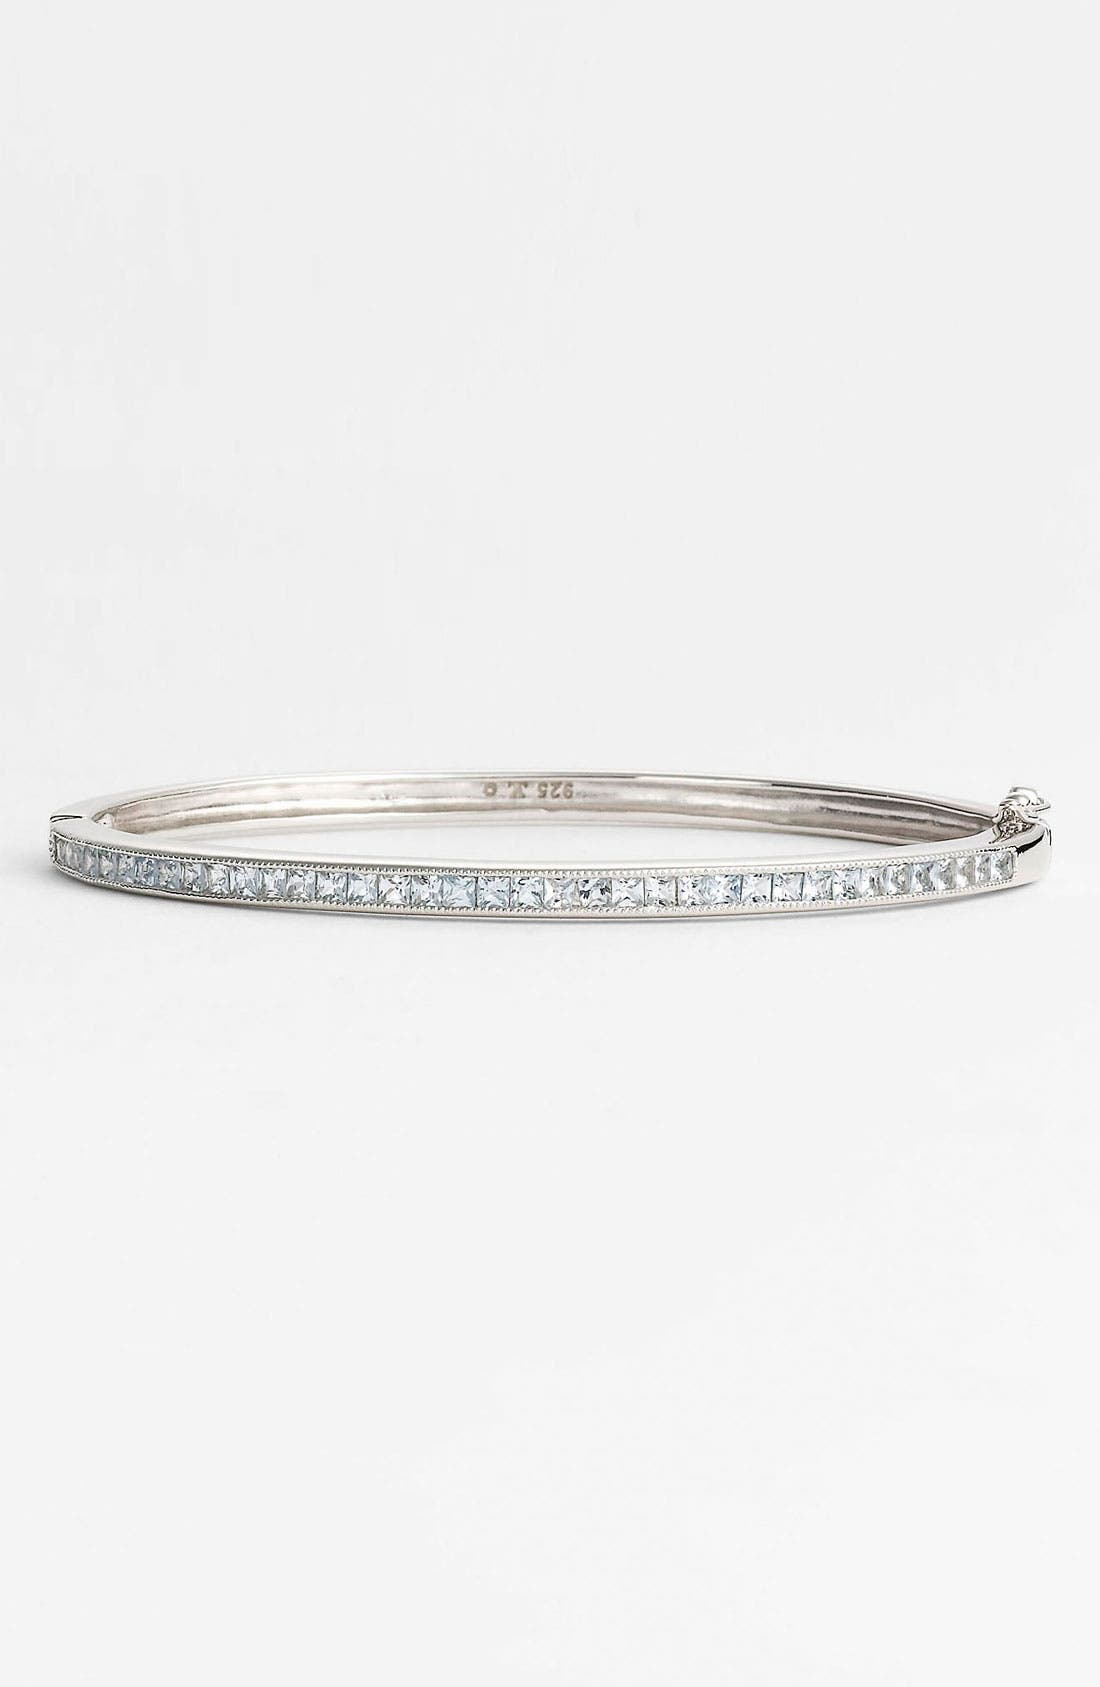 Main Image - Judith Jack Hinged Bangle